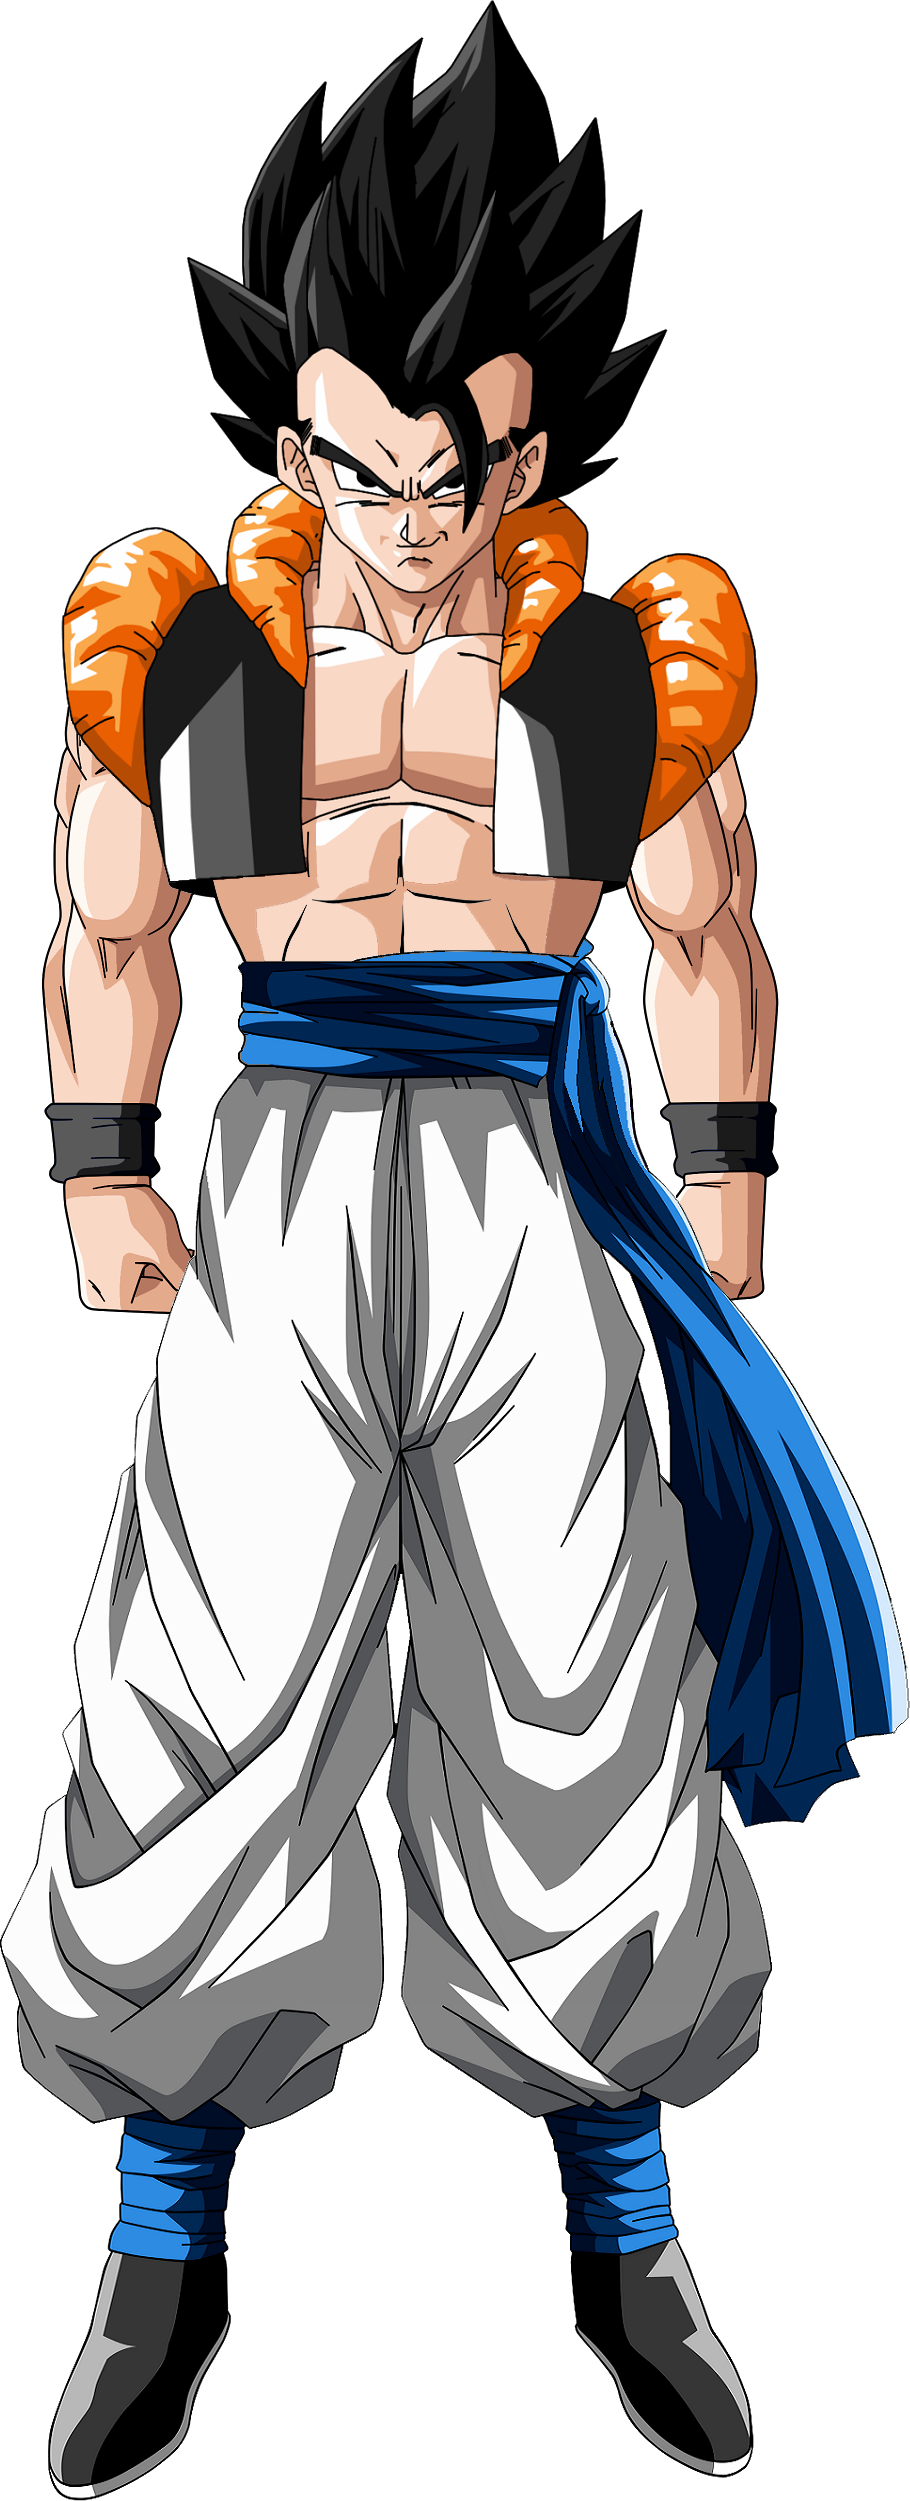 Gogeta transparent base form. Thise game should make